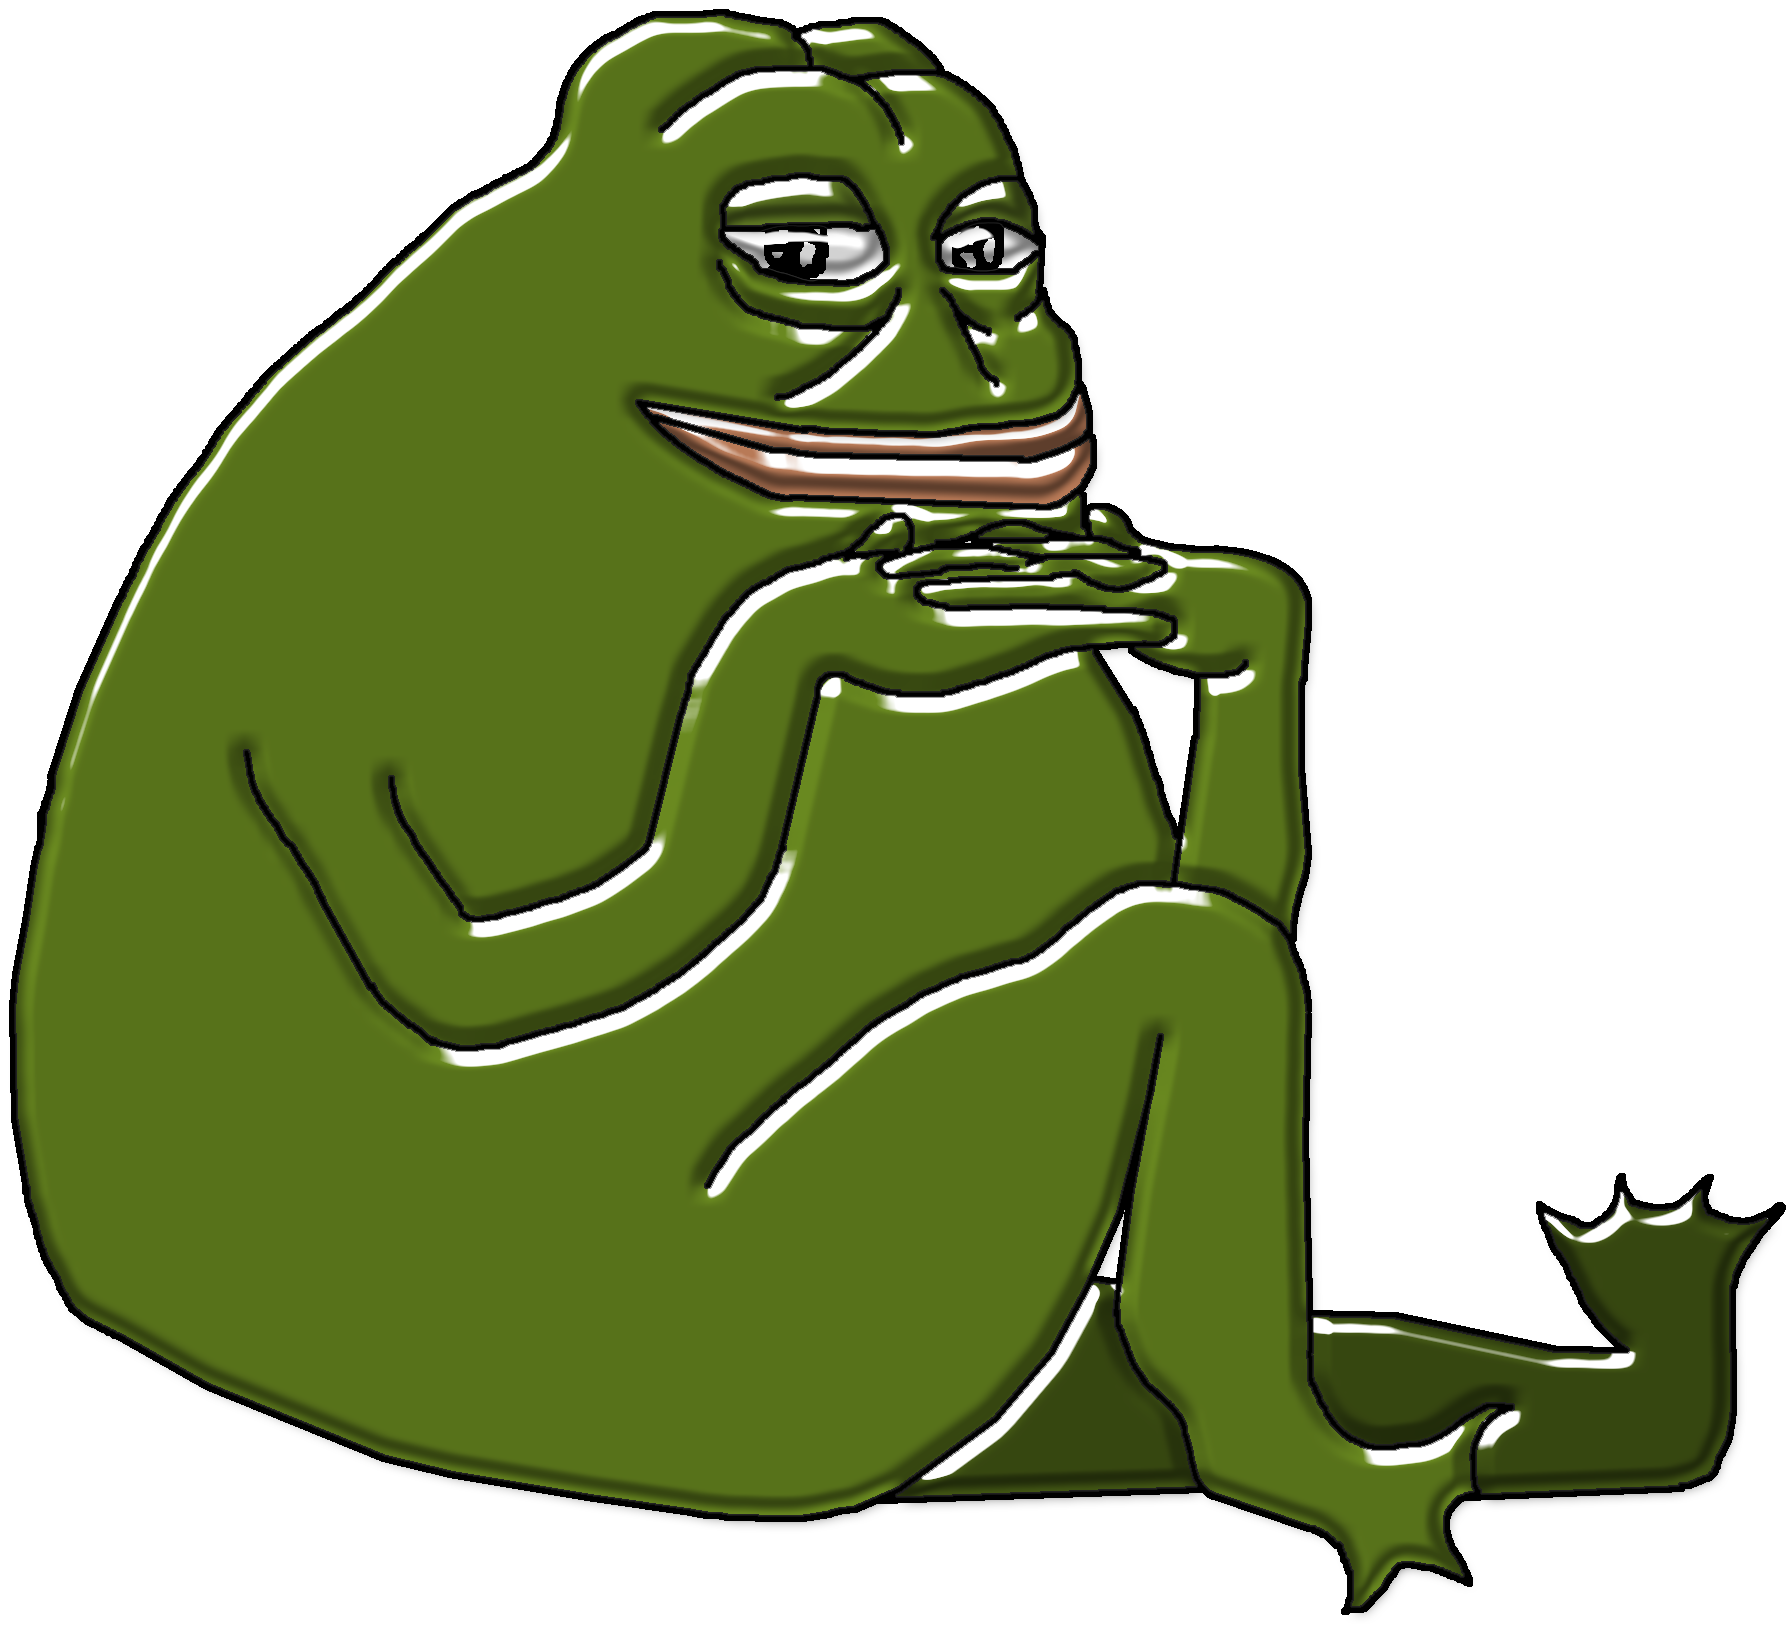 Clipart frog toad. Hq pepe the know